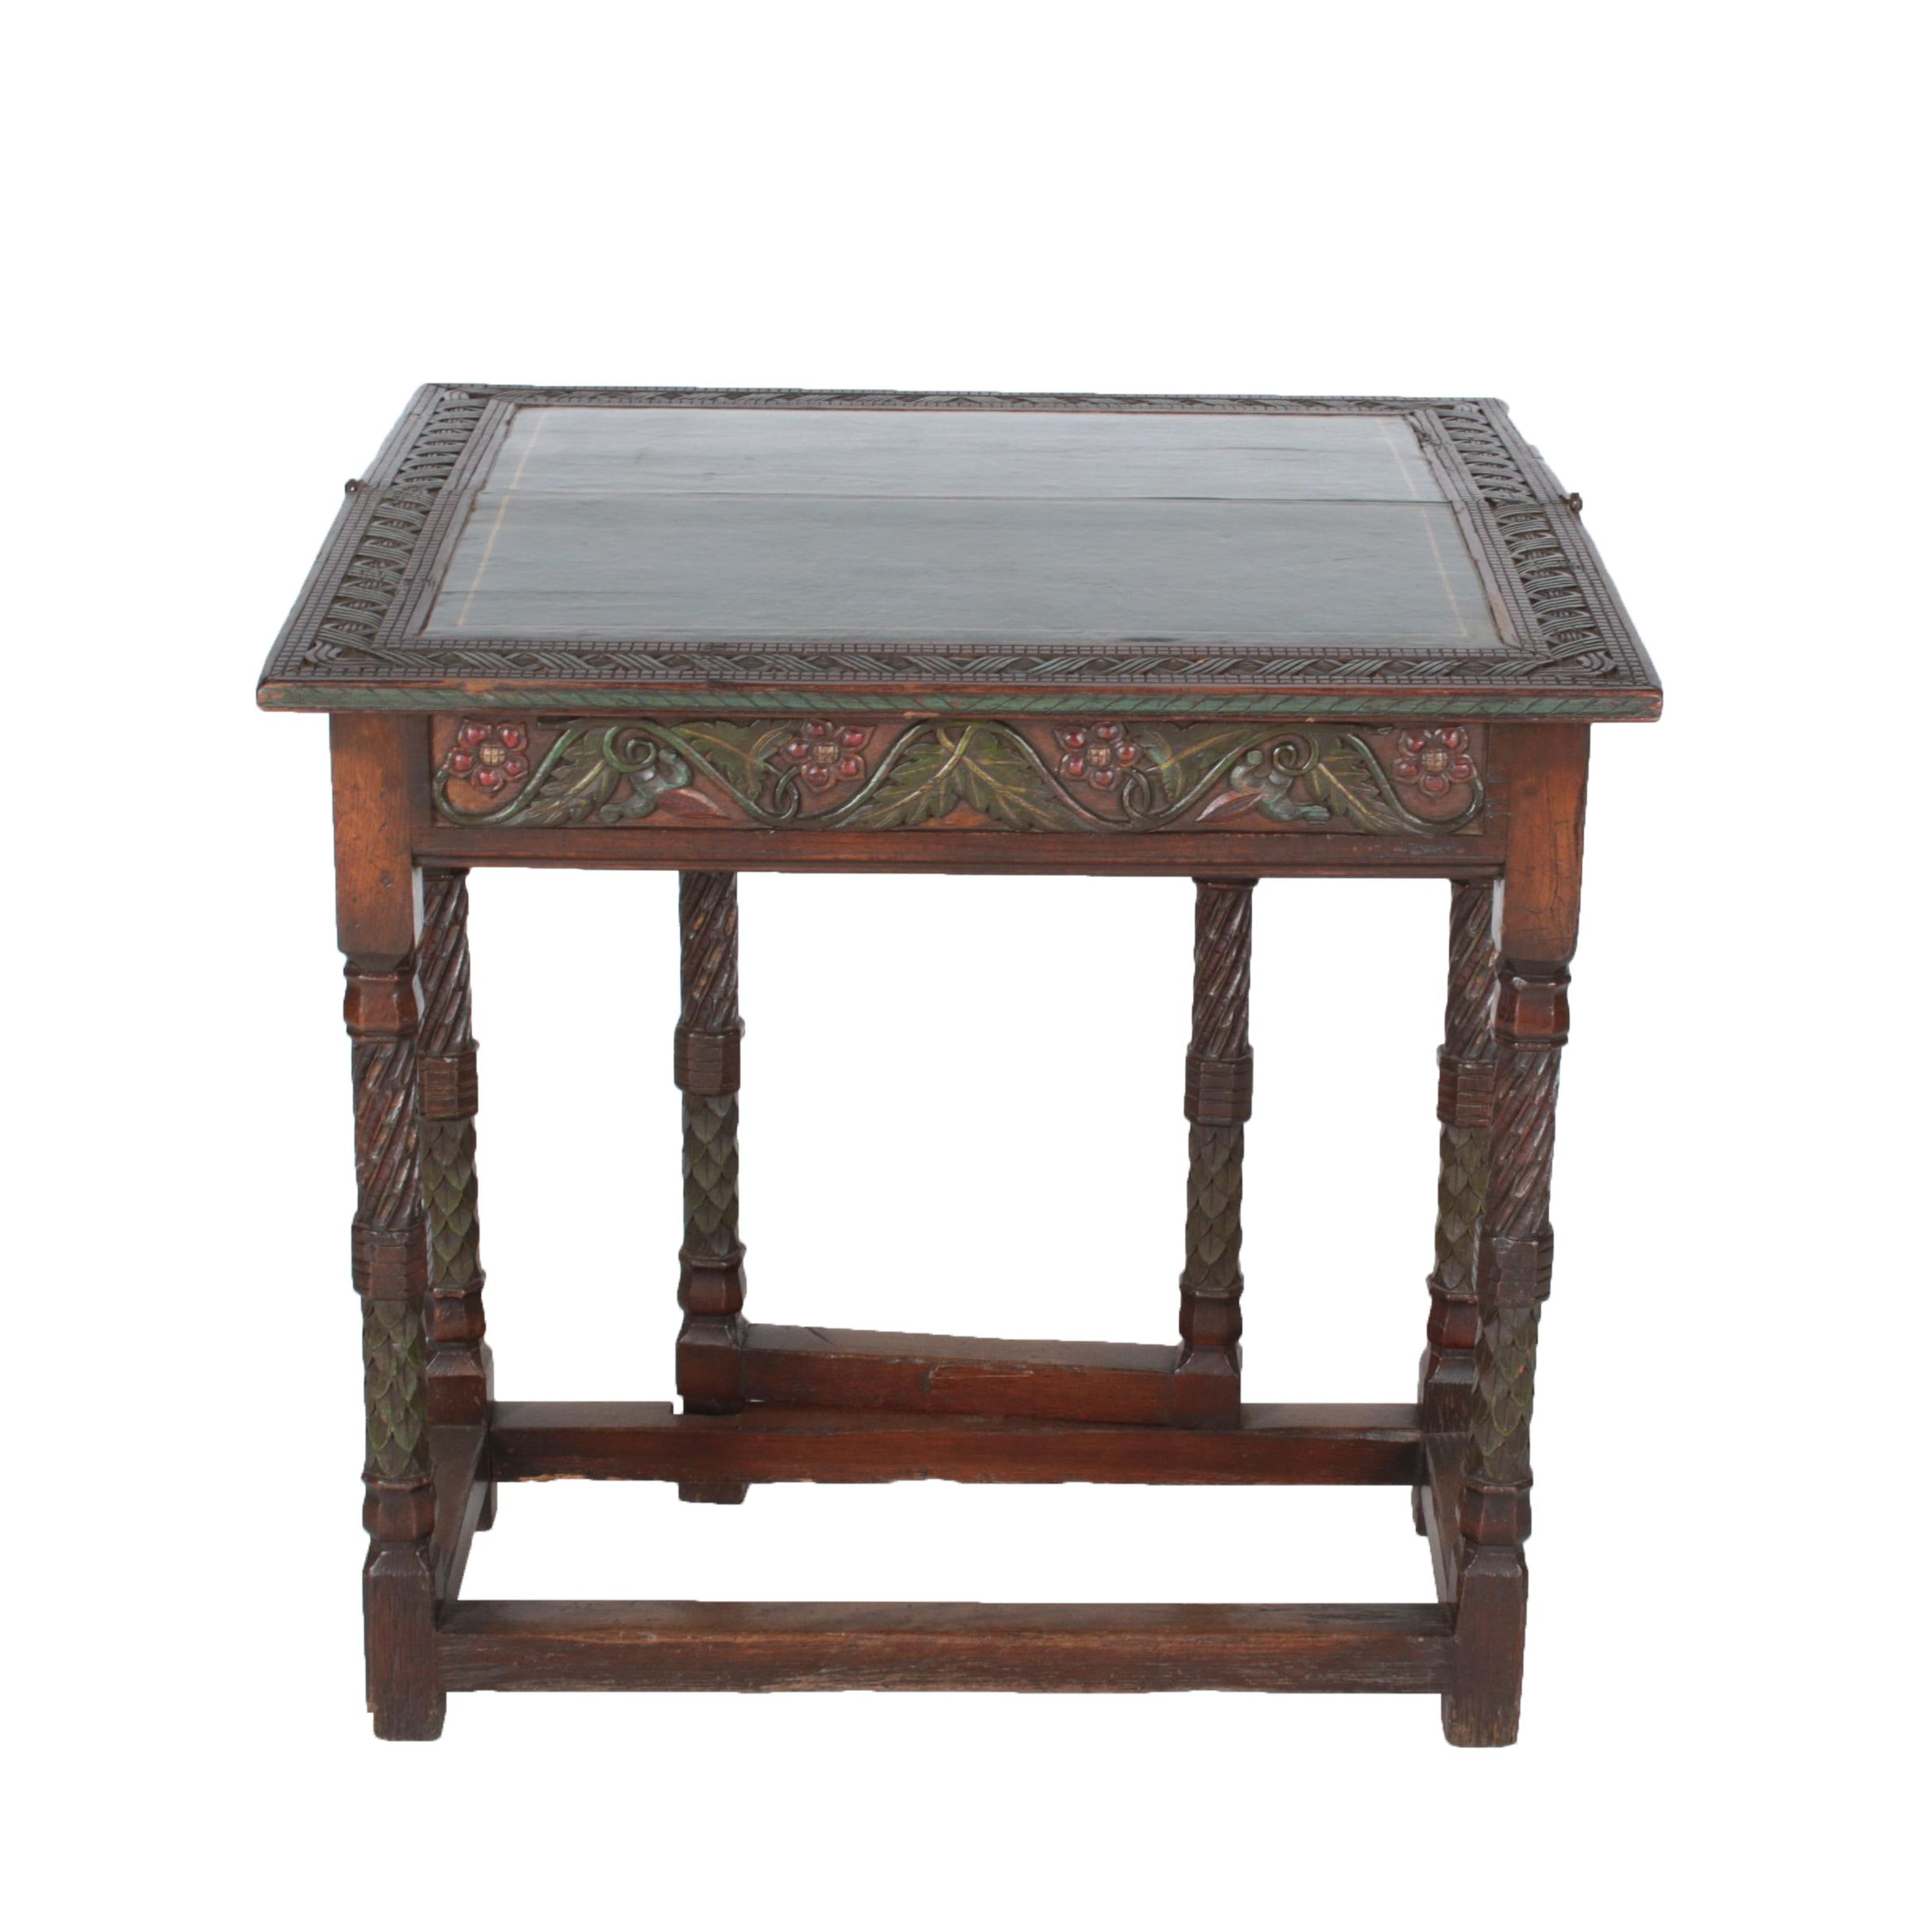 Early 20th Century Spanish Colonial Style Carved Oak and Polychromed Games Table